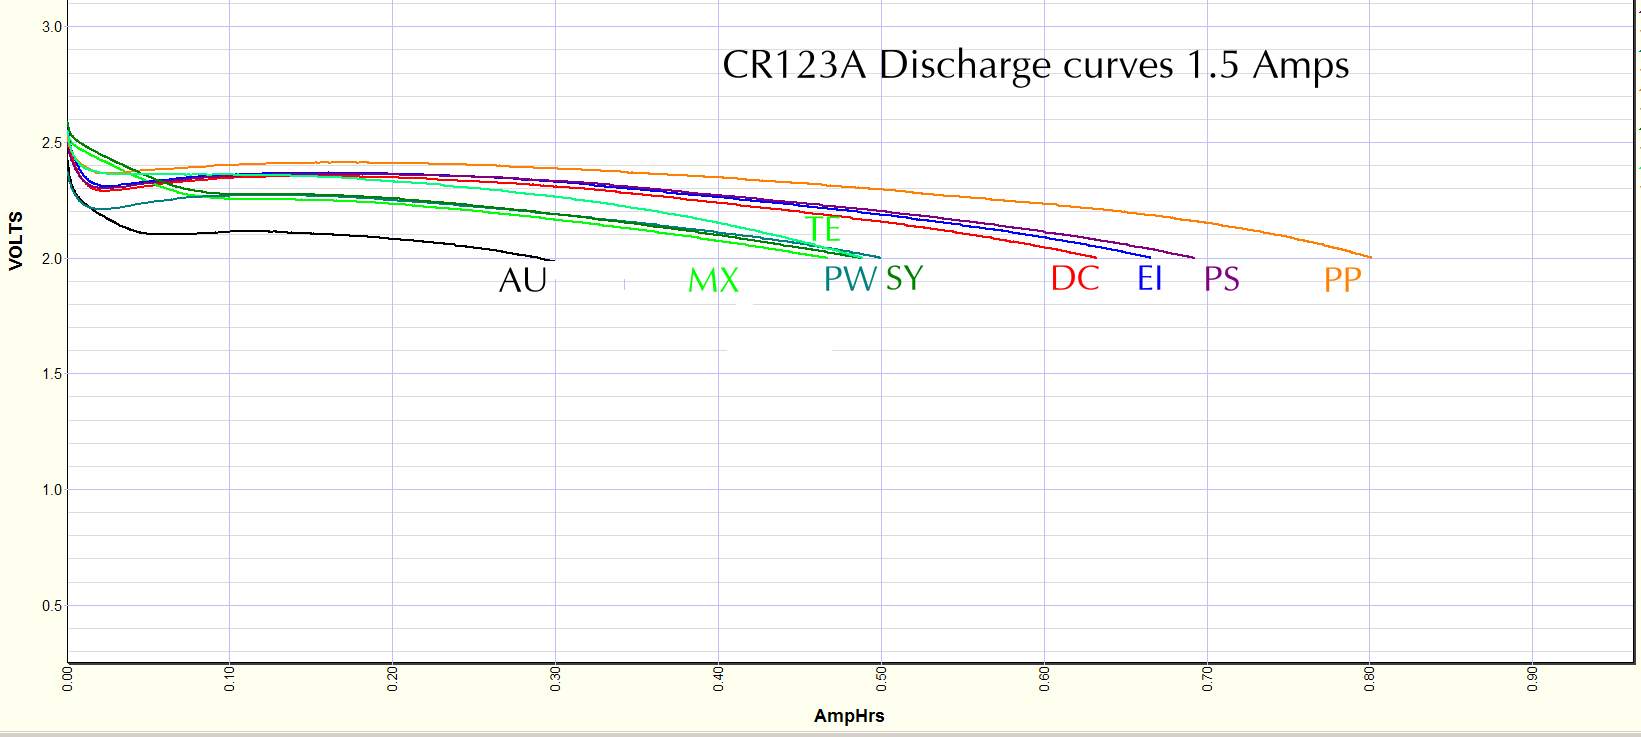 CR123 cells discharged at 1.5Amps